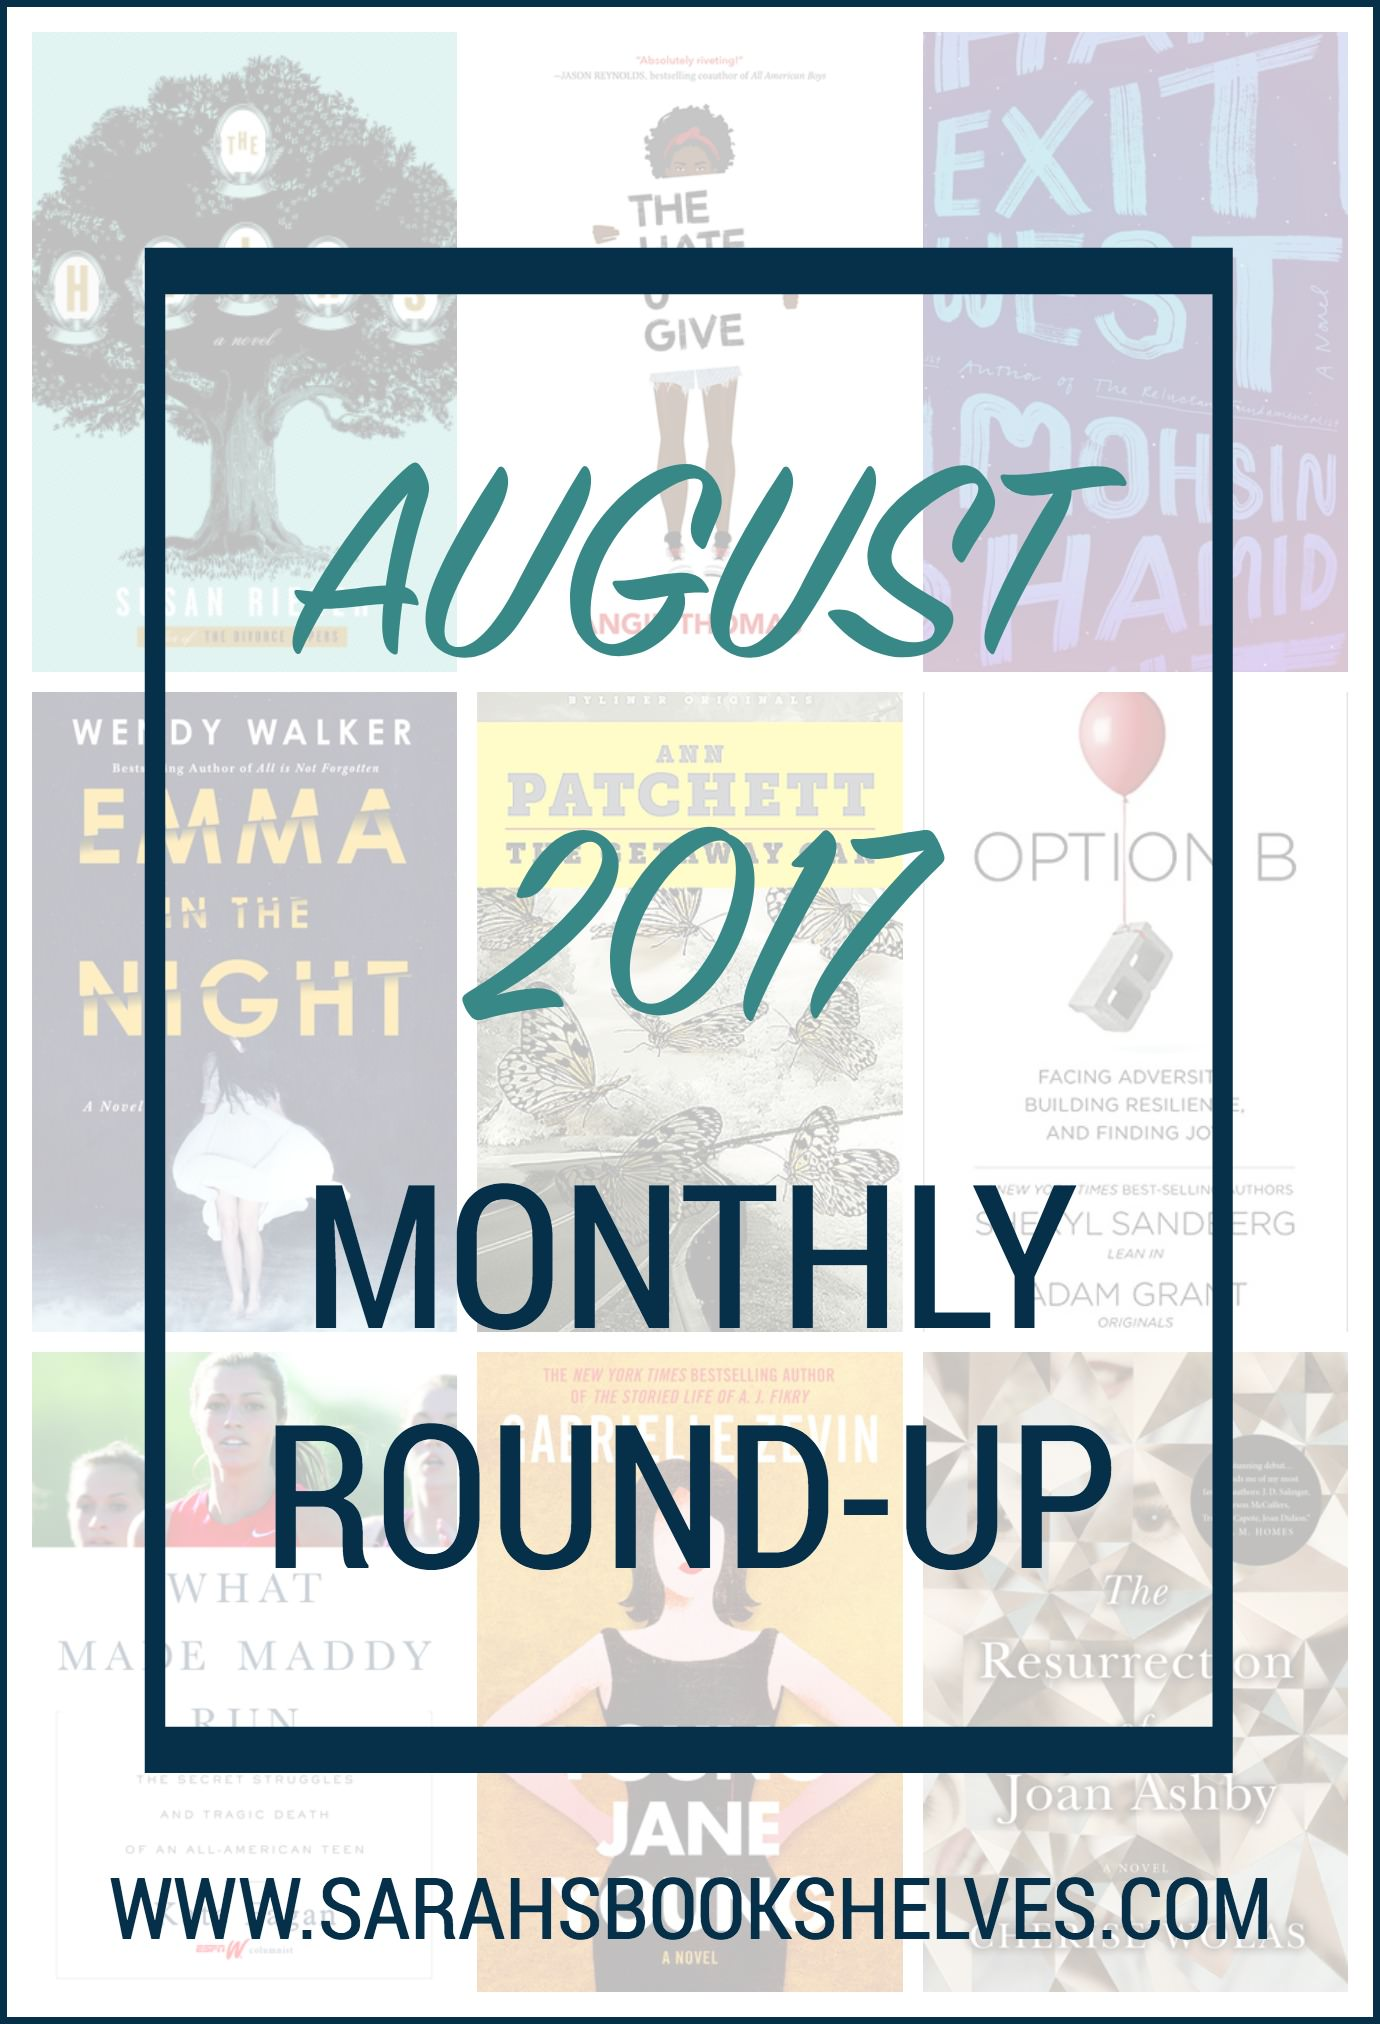 August 2017 Monthly Round-Up: my third slumpy reading month in a row, but I did read my most satisfying psychological thriller since Gone Girl!